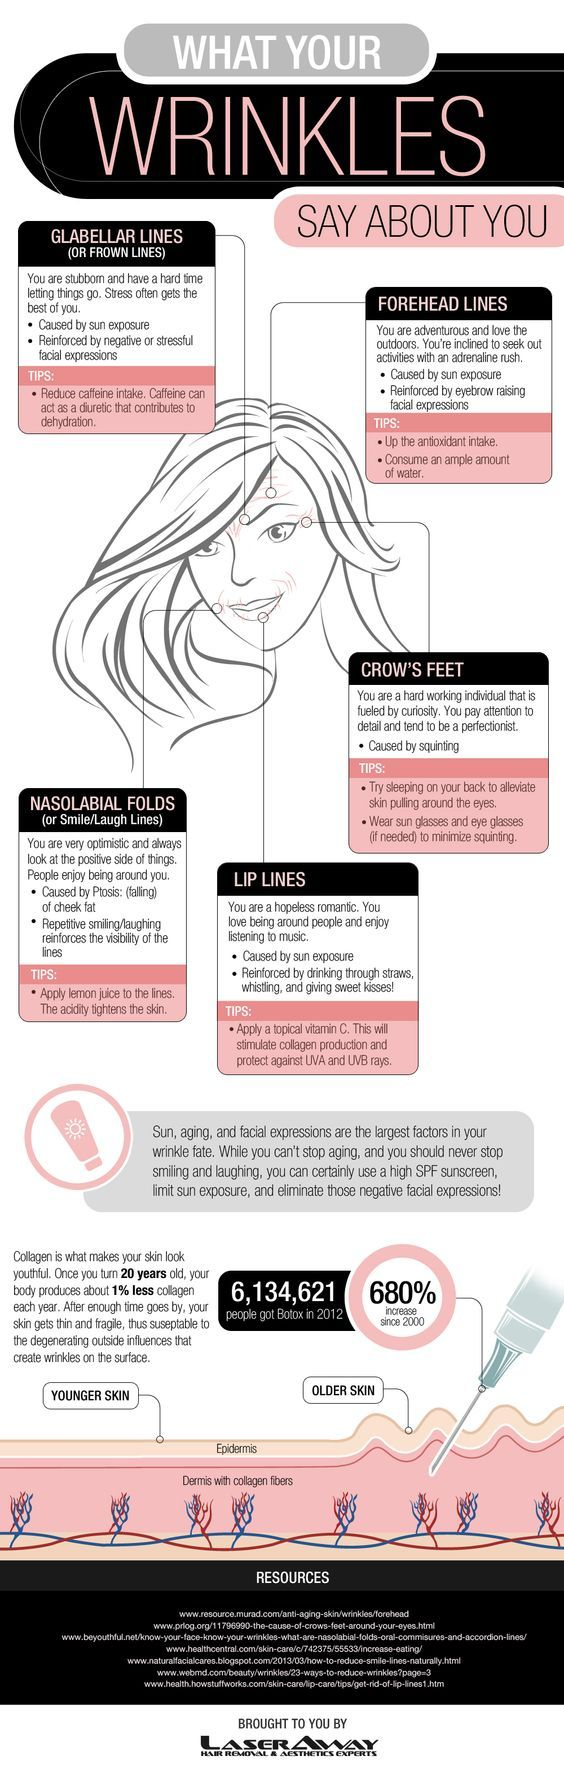 What do your wrinkles say about you? Have you been over stressed or is your life filled with laughter? This infographic will show you what is the main cause of your wrinkles, as well as a few tips and tricks below to help prevent their future progression. #beauty #skincare #bbloggers